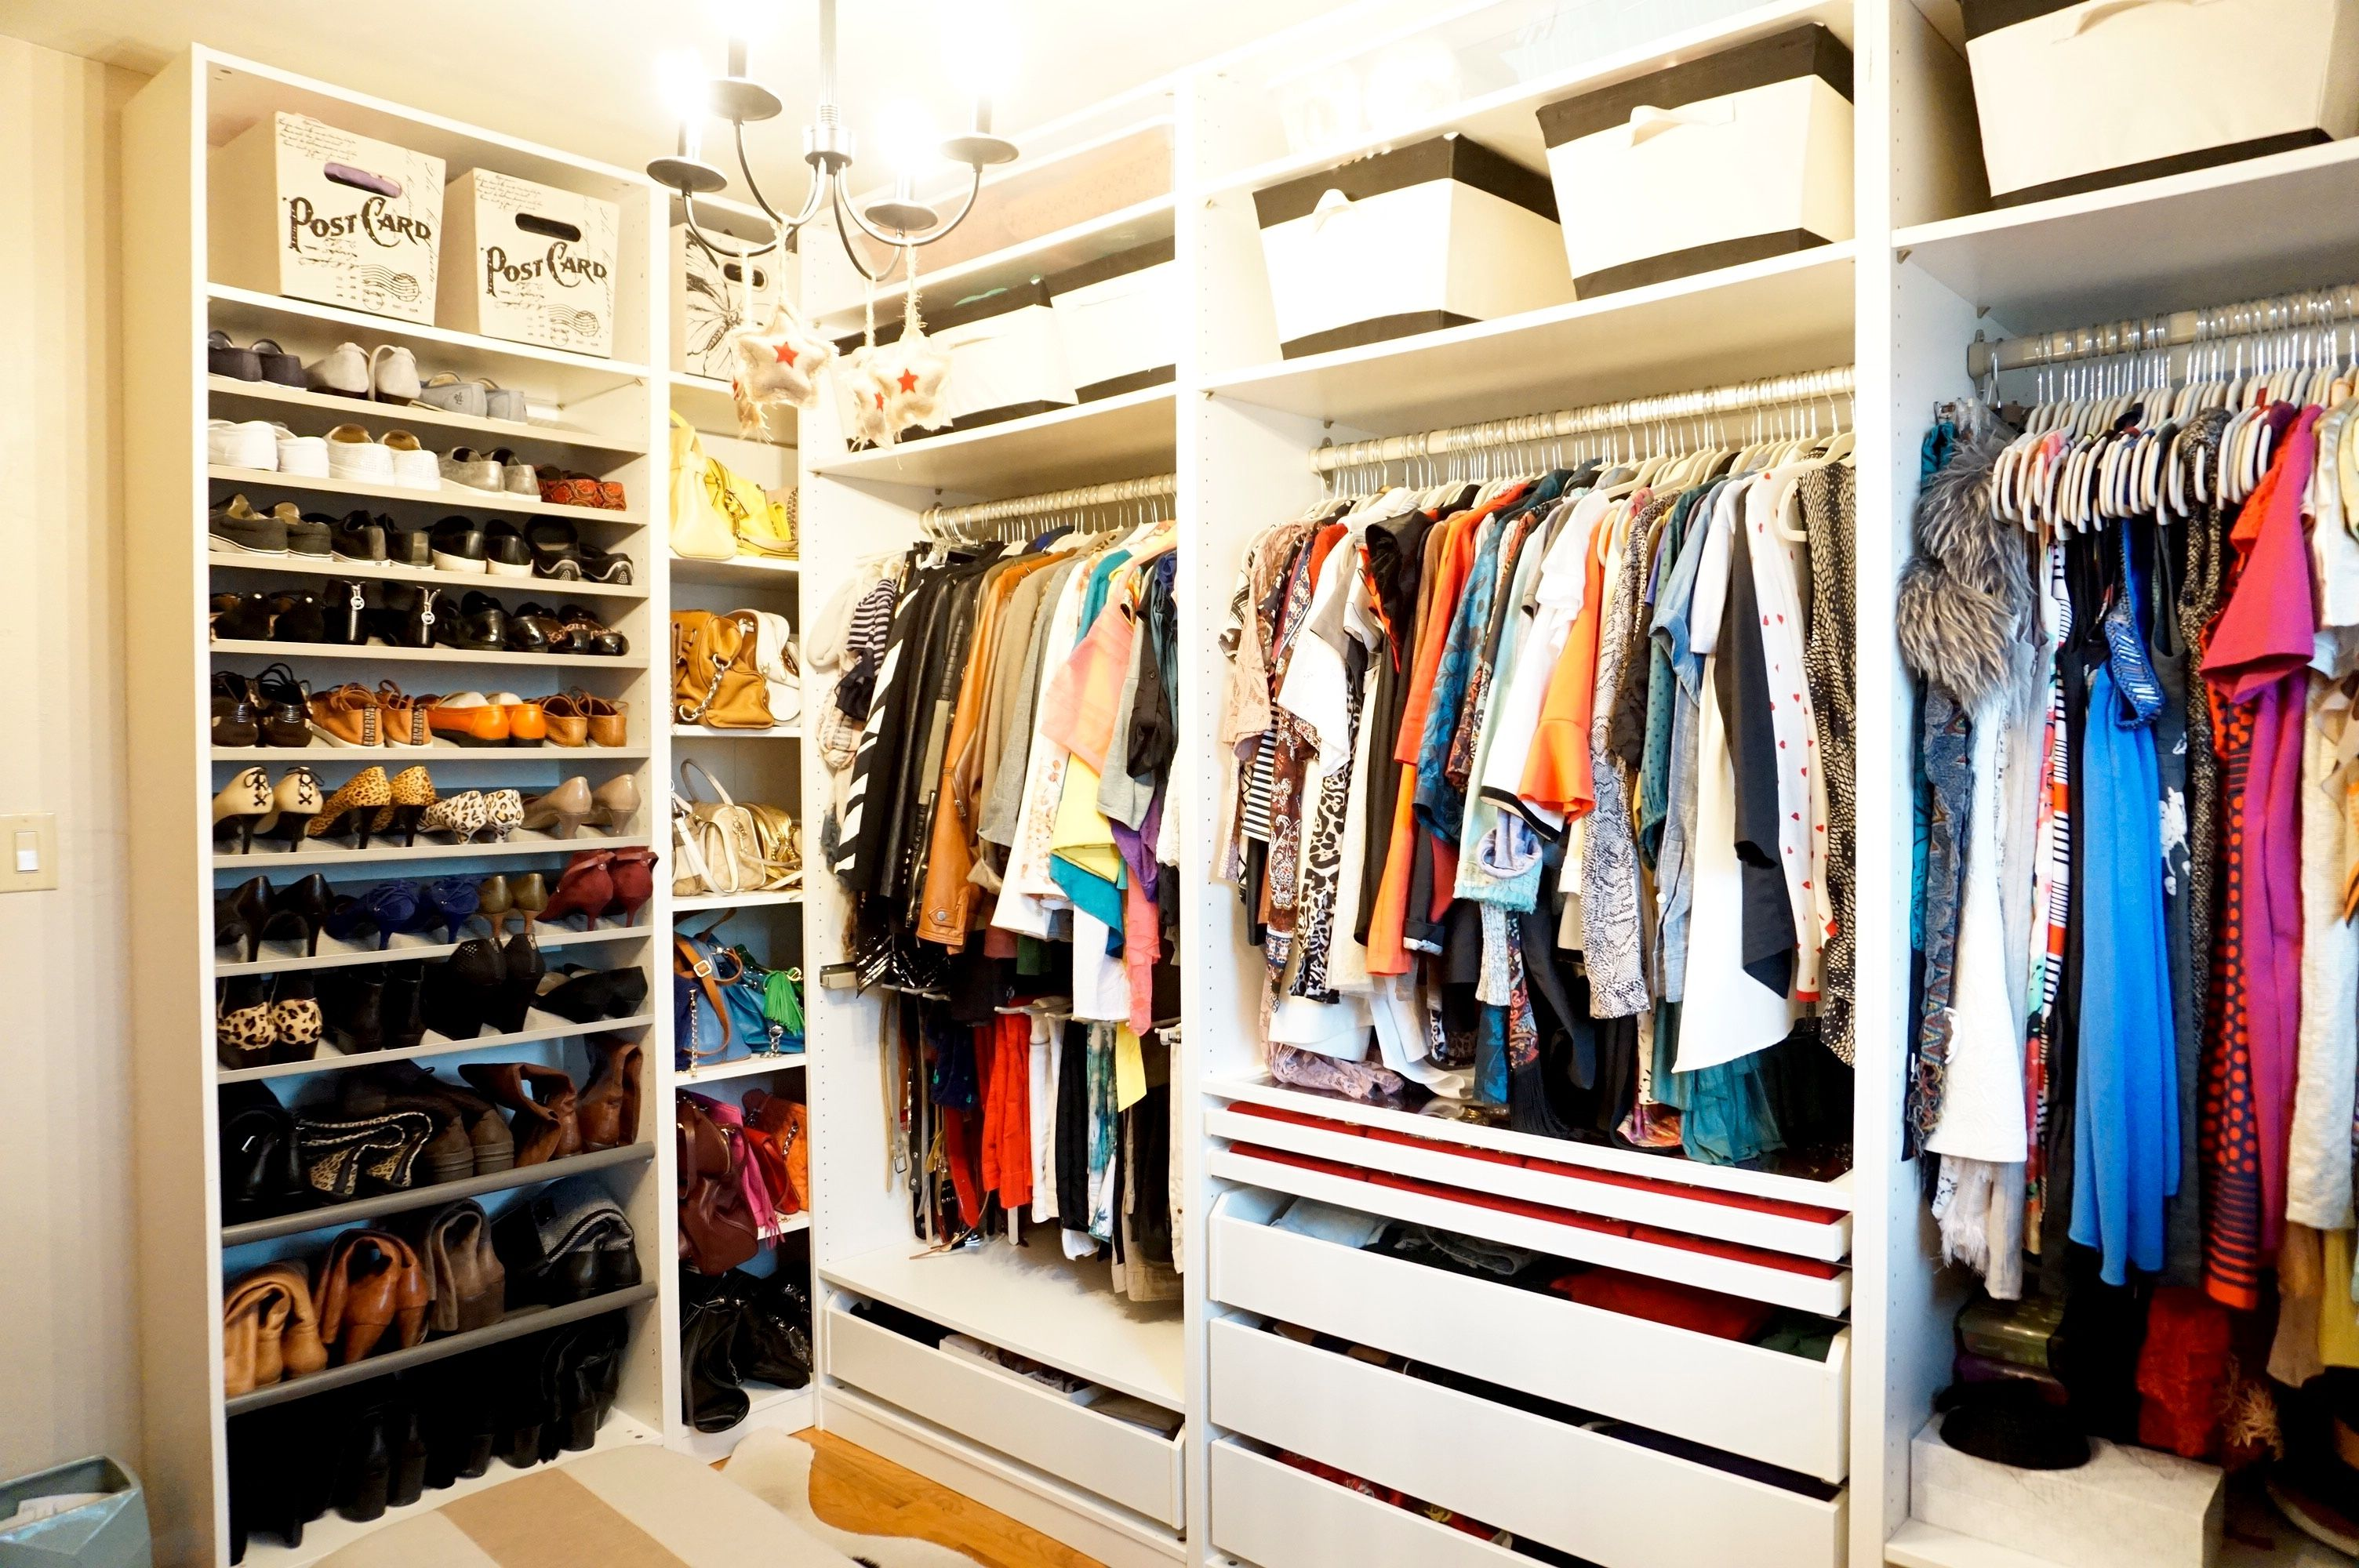 Ankleidezimmer ikea ~ Ikea pax closet system review organizing clothes & accessories